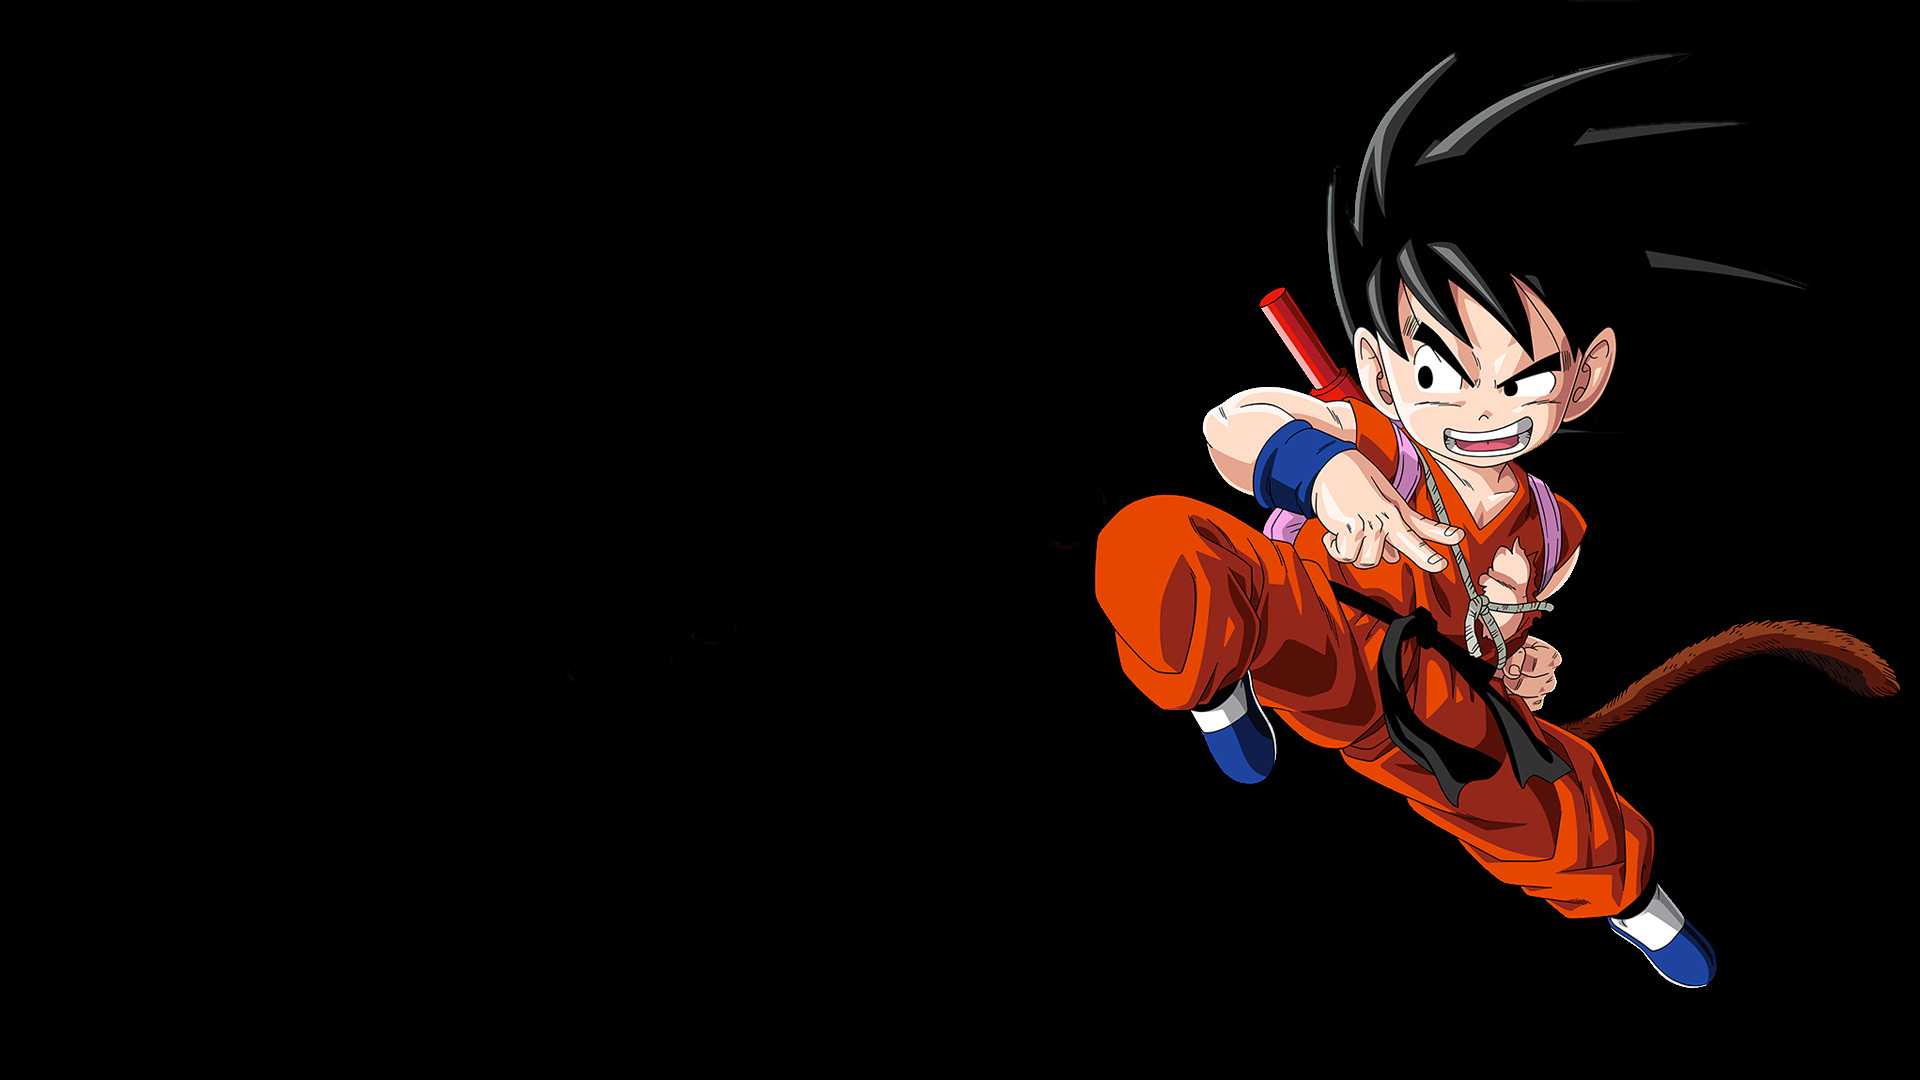 40 best goku wallpaper hd for pc dragon ball z